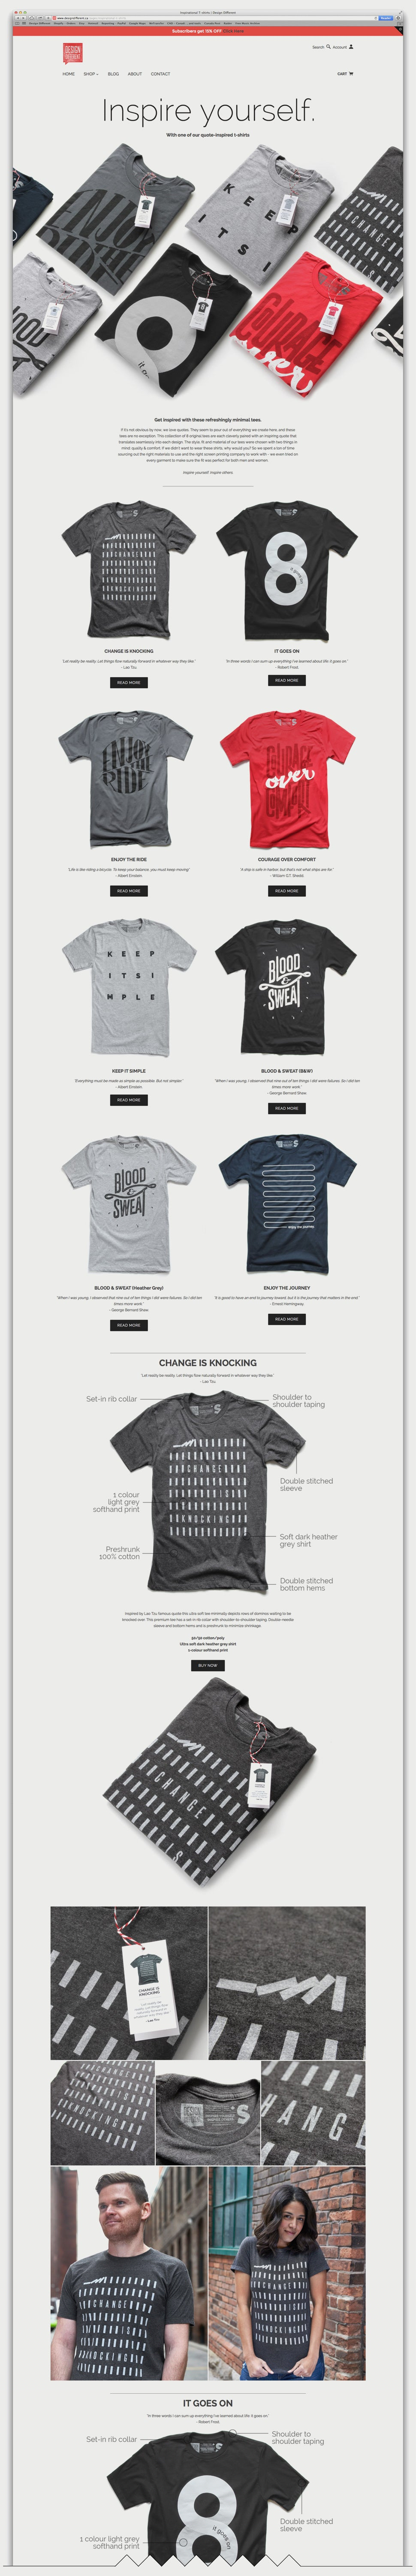 t-shirt design - how to launch a t-shirt line